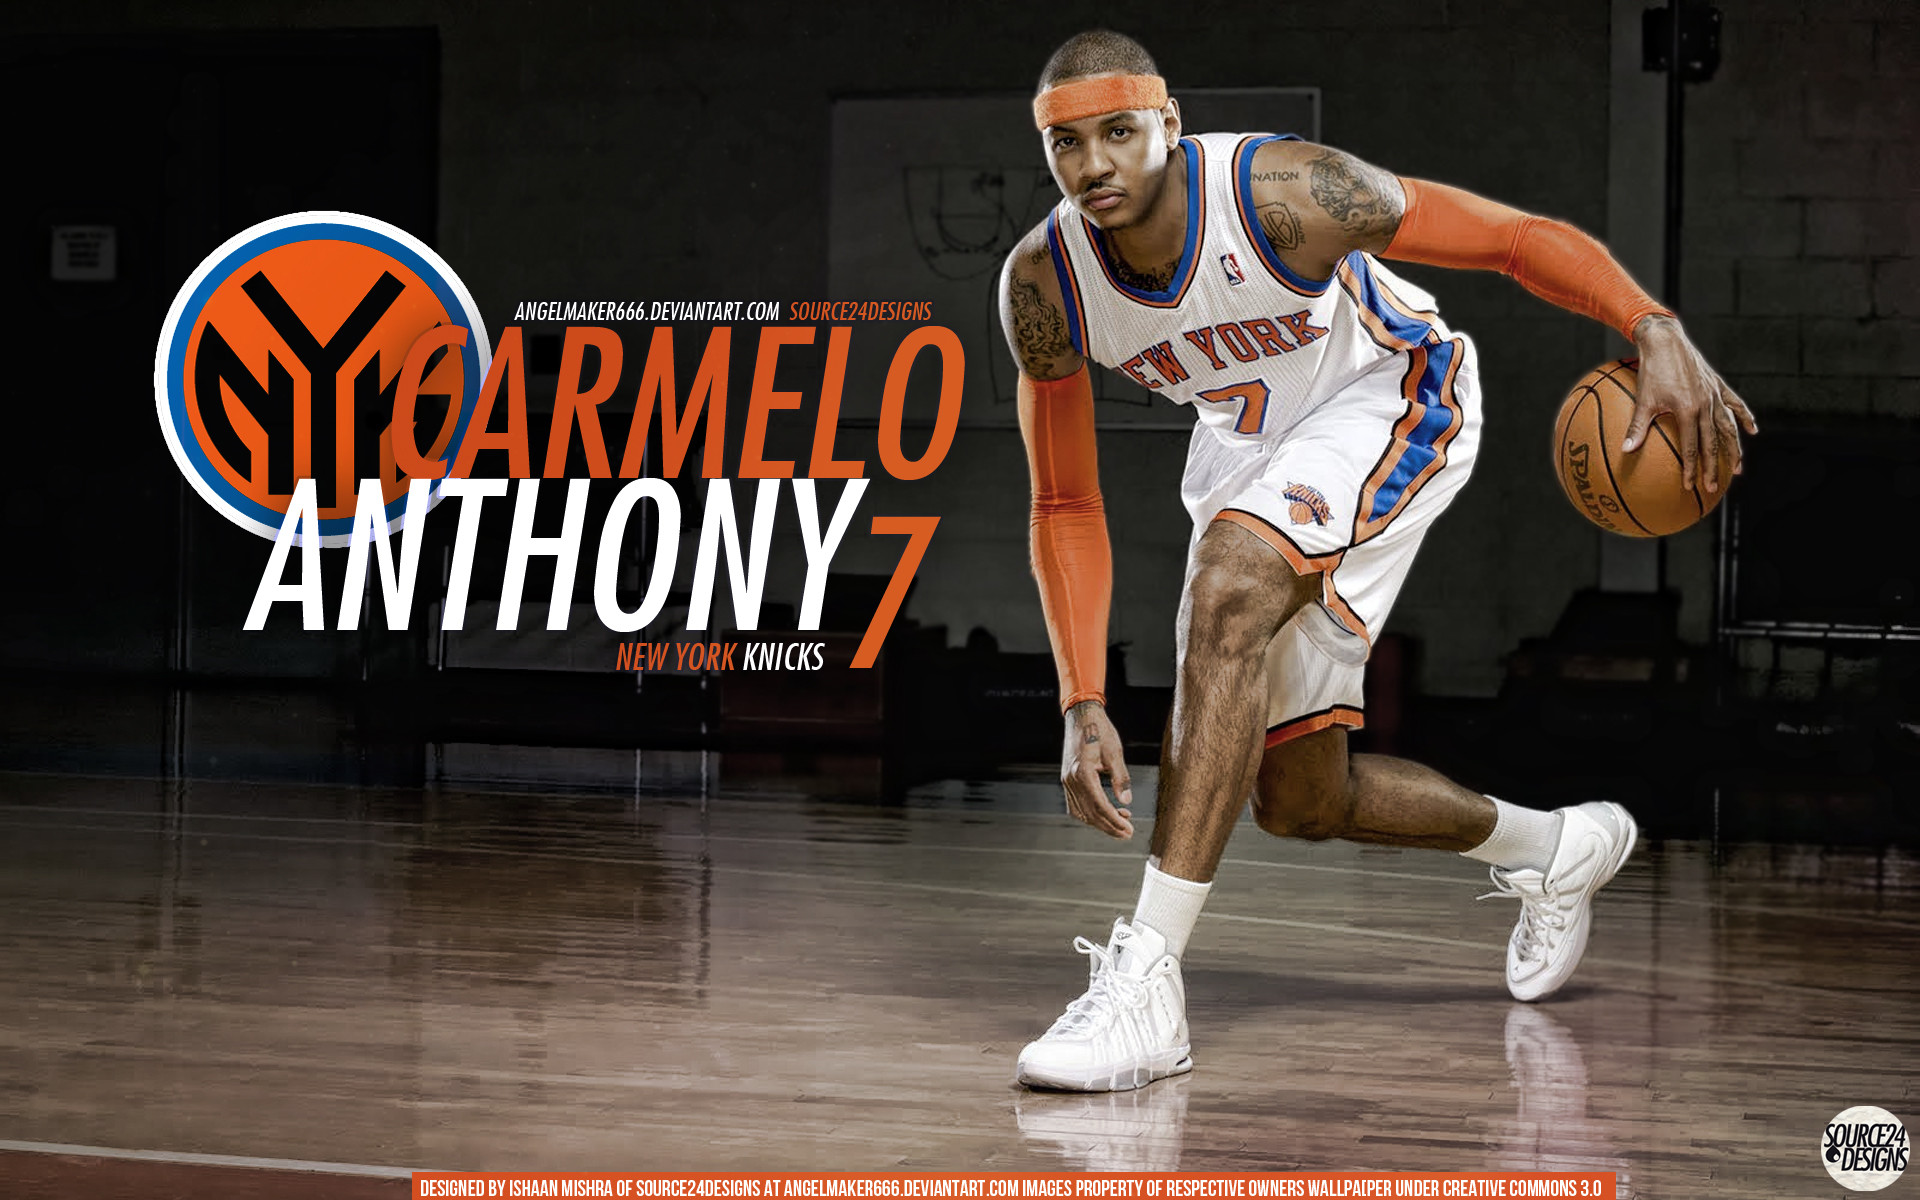 1920x1200 Carmelo Anthony Knicks Wall by IshaanMishra Carmelo Anthony Knicks Wall by  IshaanMishra